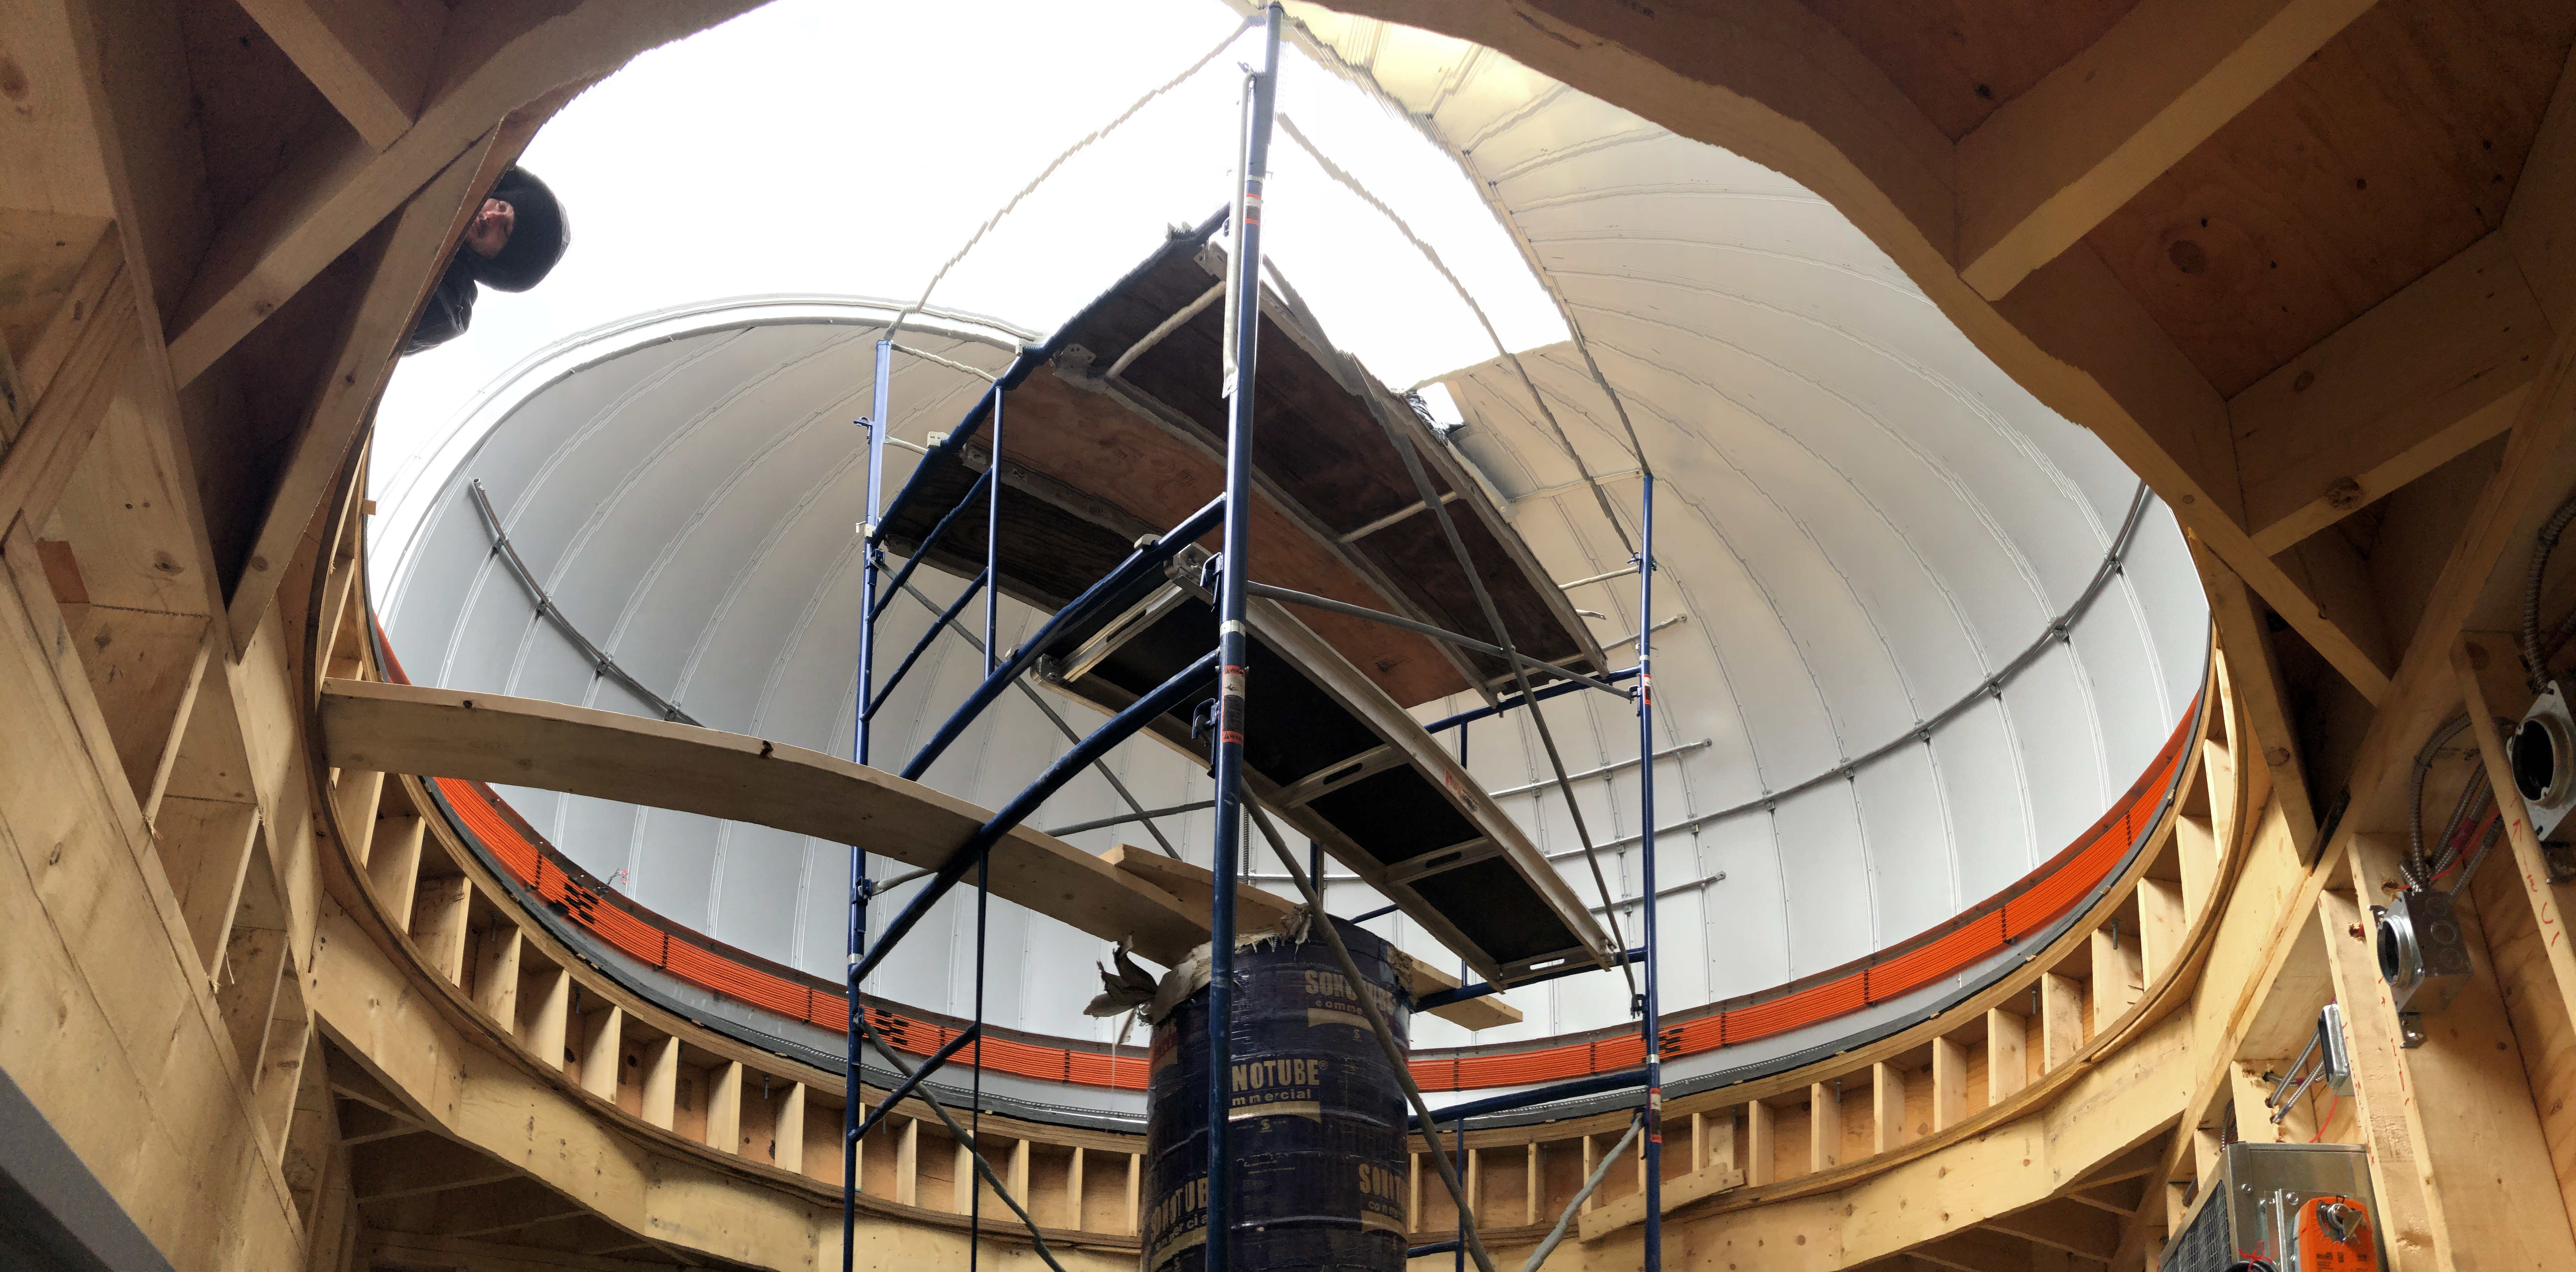 A wide-field image of the dome interior. Note that edges are a little warped in this image due to the camera's odd stitching of the frames. You can see the top of the pier and the orange power line system for dome operations which make the system effectively wireless. No wires will be dangling down from above to control the dome's motion.